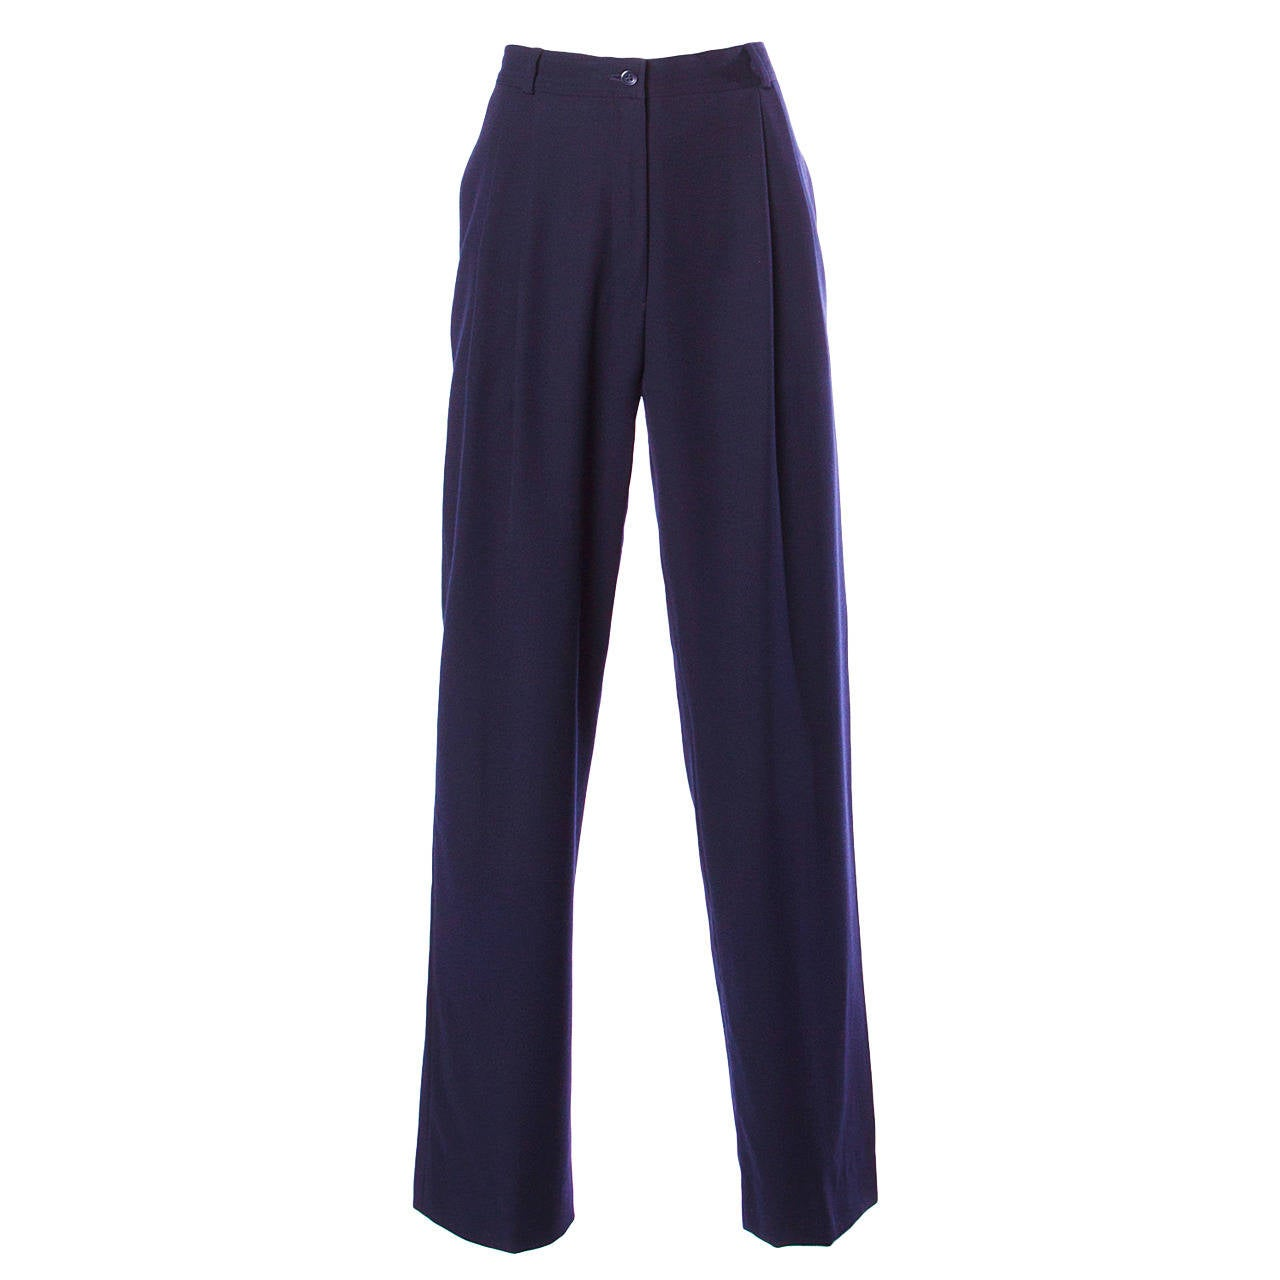 Valentino Vintage Navy Blue High Waisted Pleated Trousers